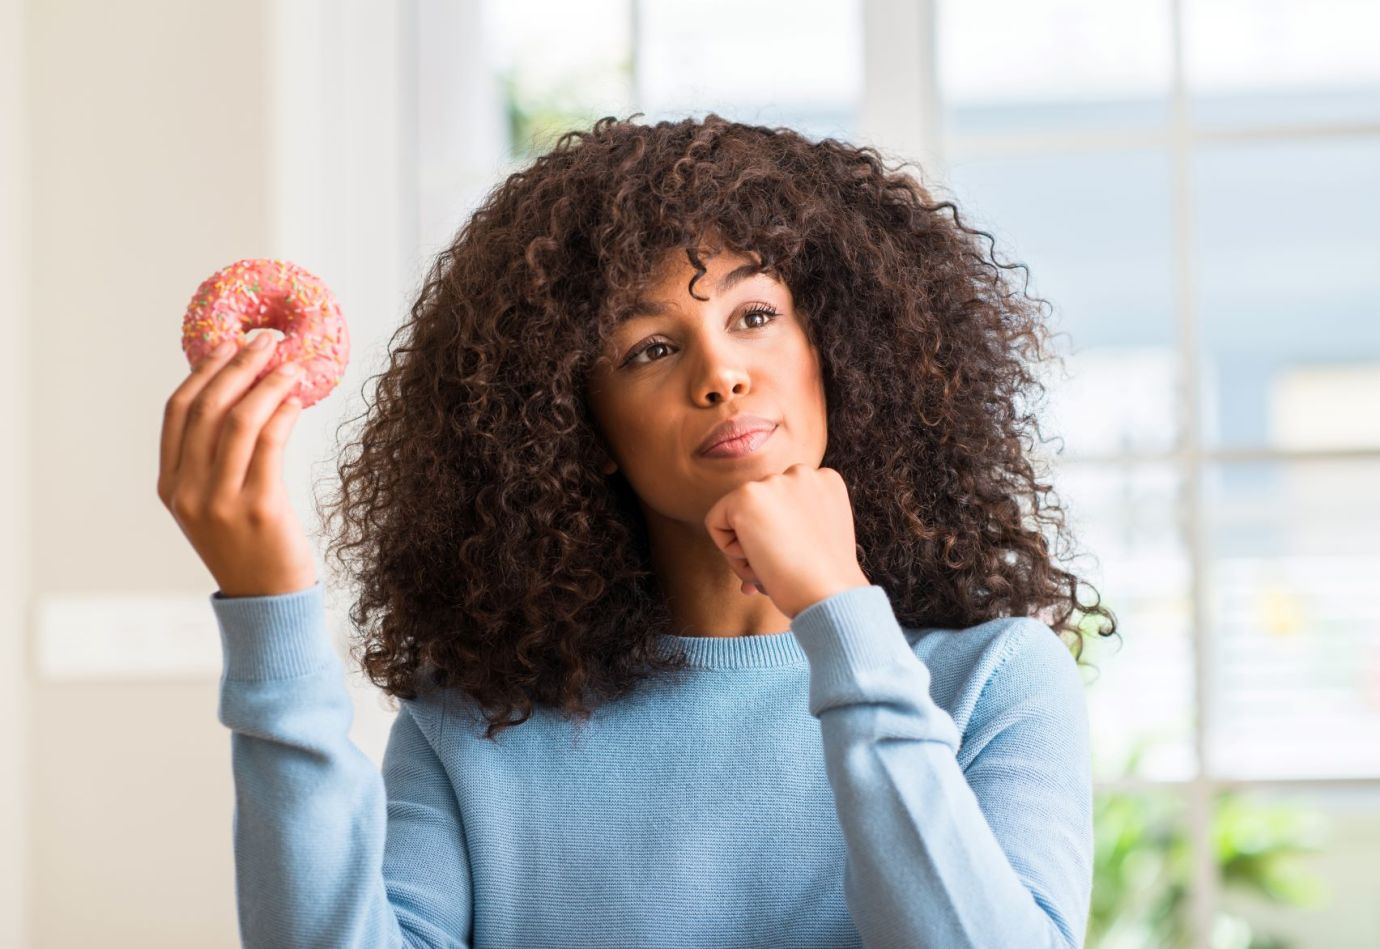 Black woman in a thinking pose, confused, sitting down while holding a pink donut with sprinkles in a blue sweater.